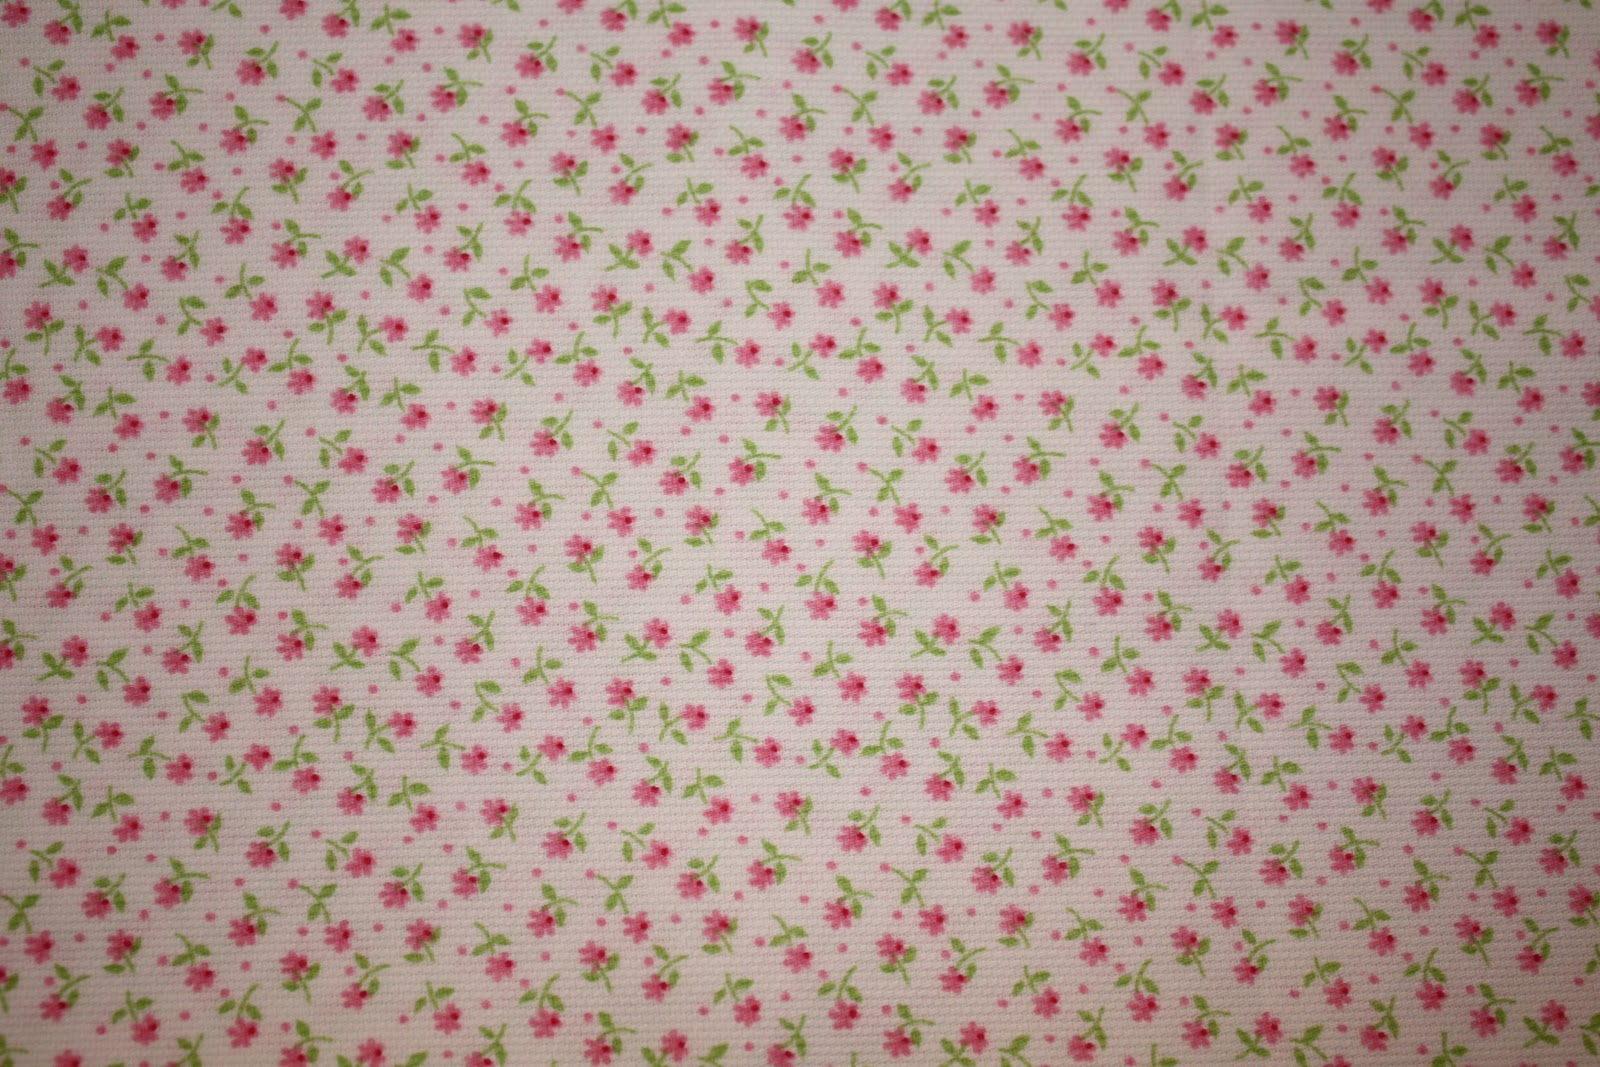 They are the same pique fabric in pink and blue by Fabric Finders!! I cannot wait to use them in my applique samples.